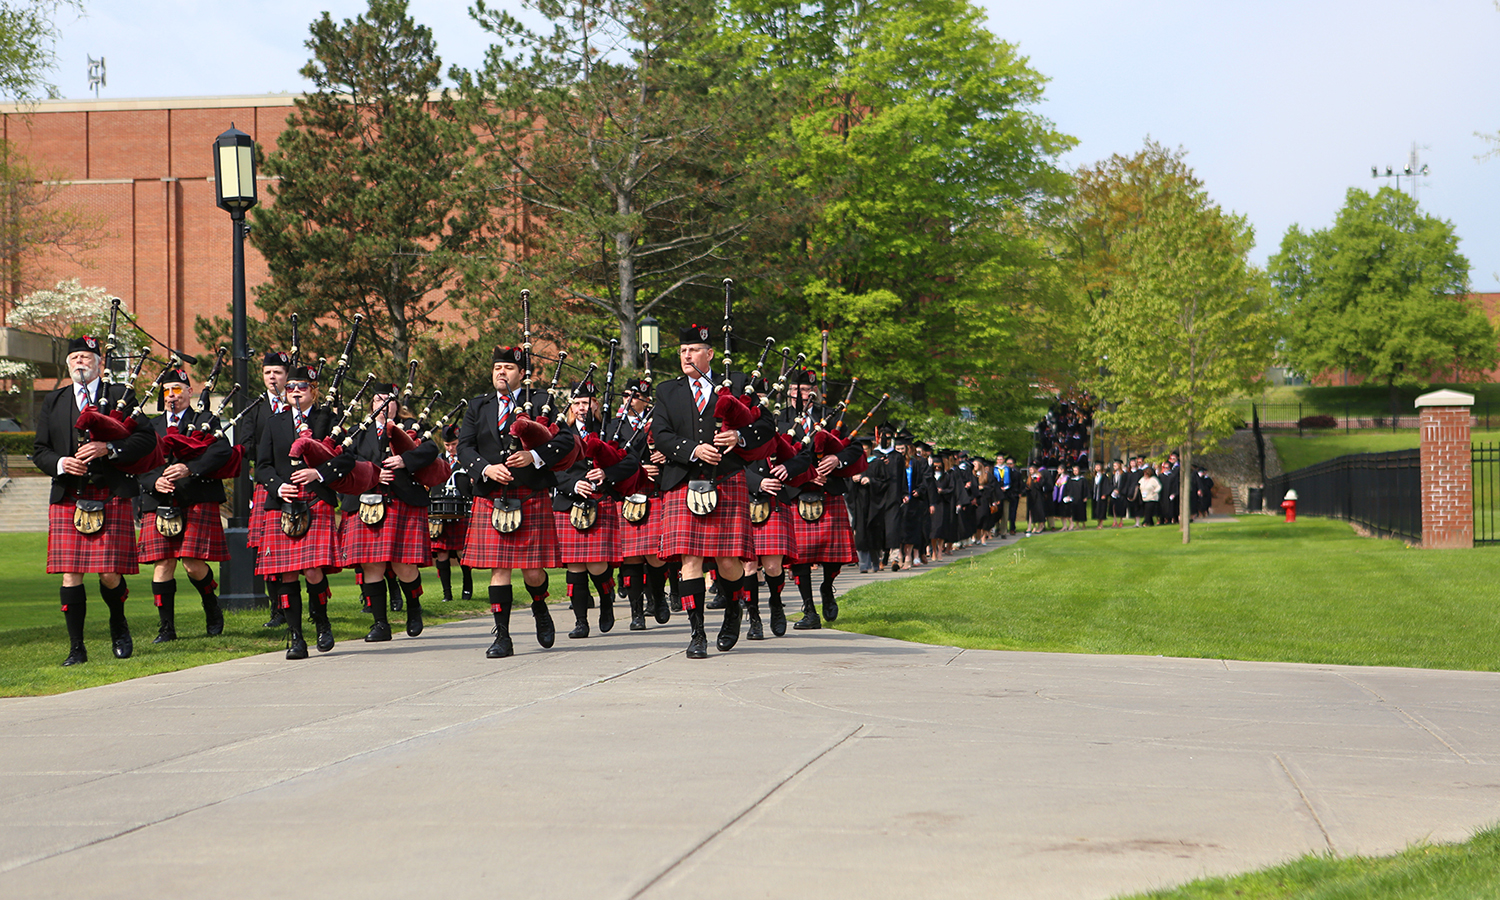 The Mohawk Valley Frasers Pipe Band leads the Commencement procession.